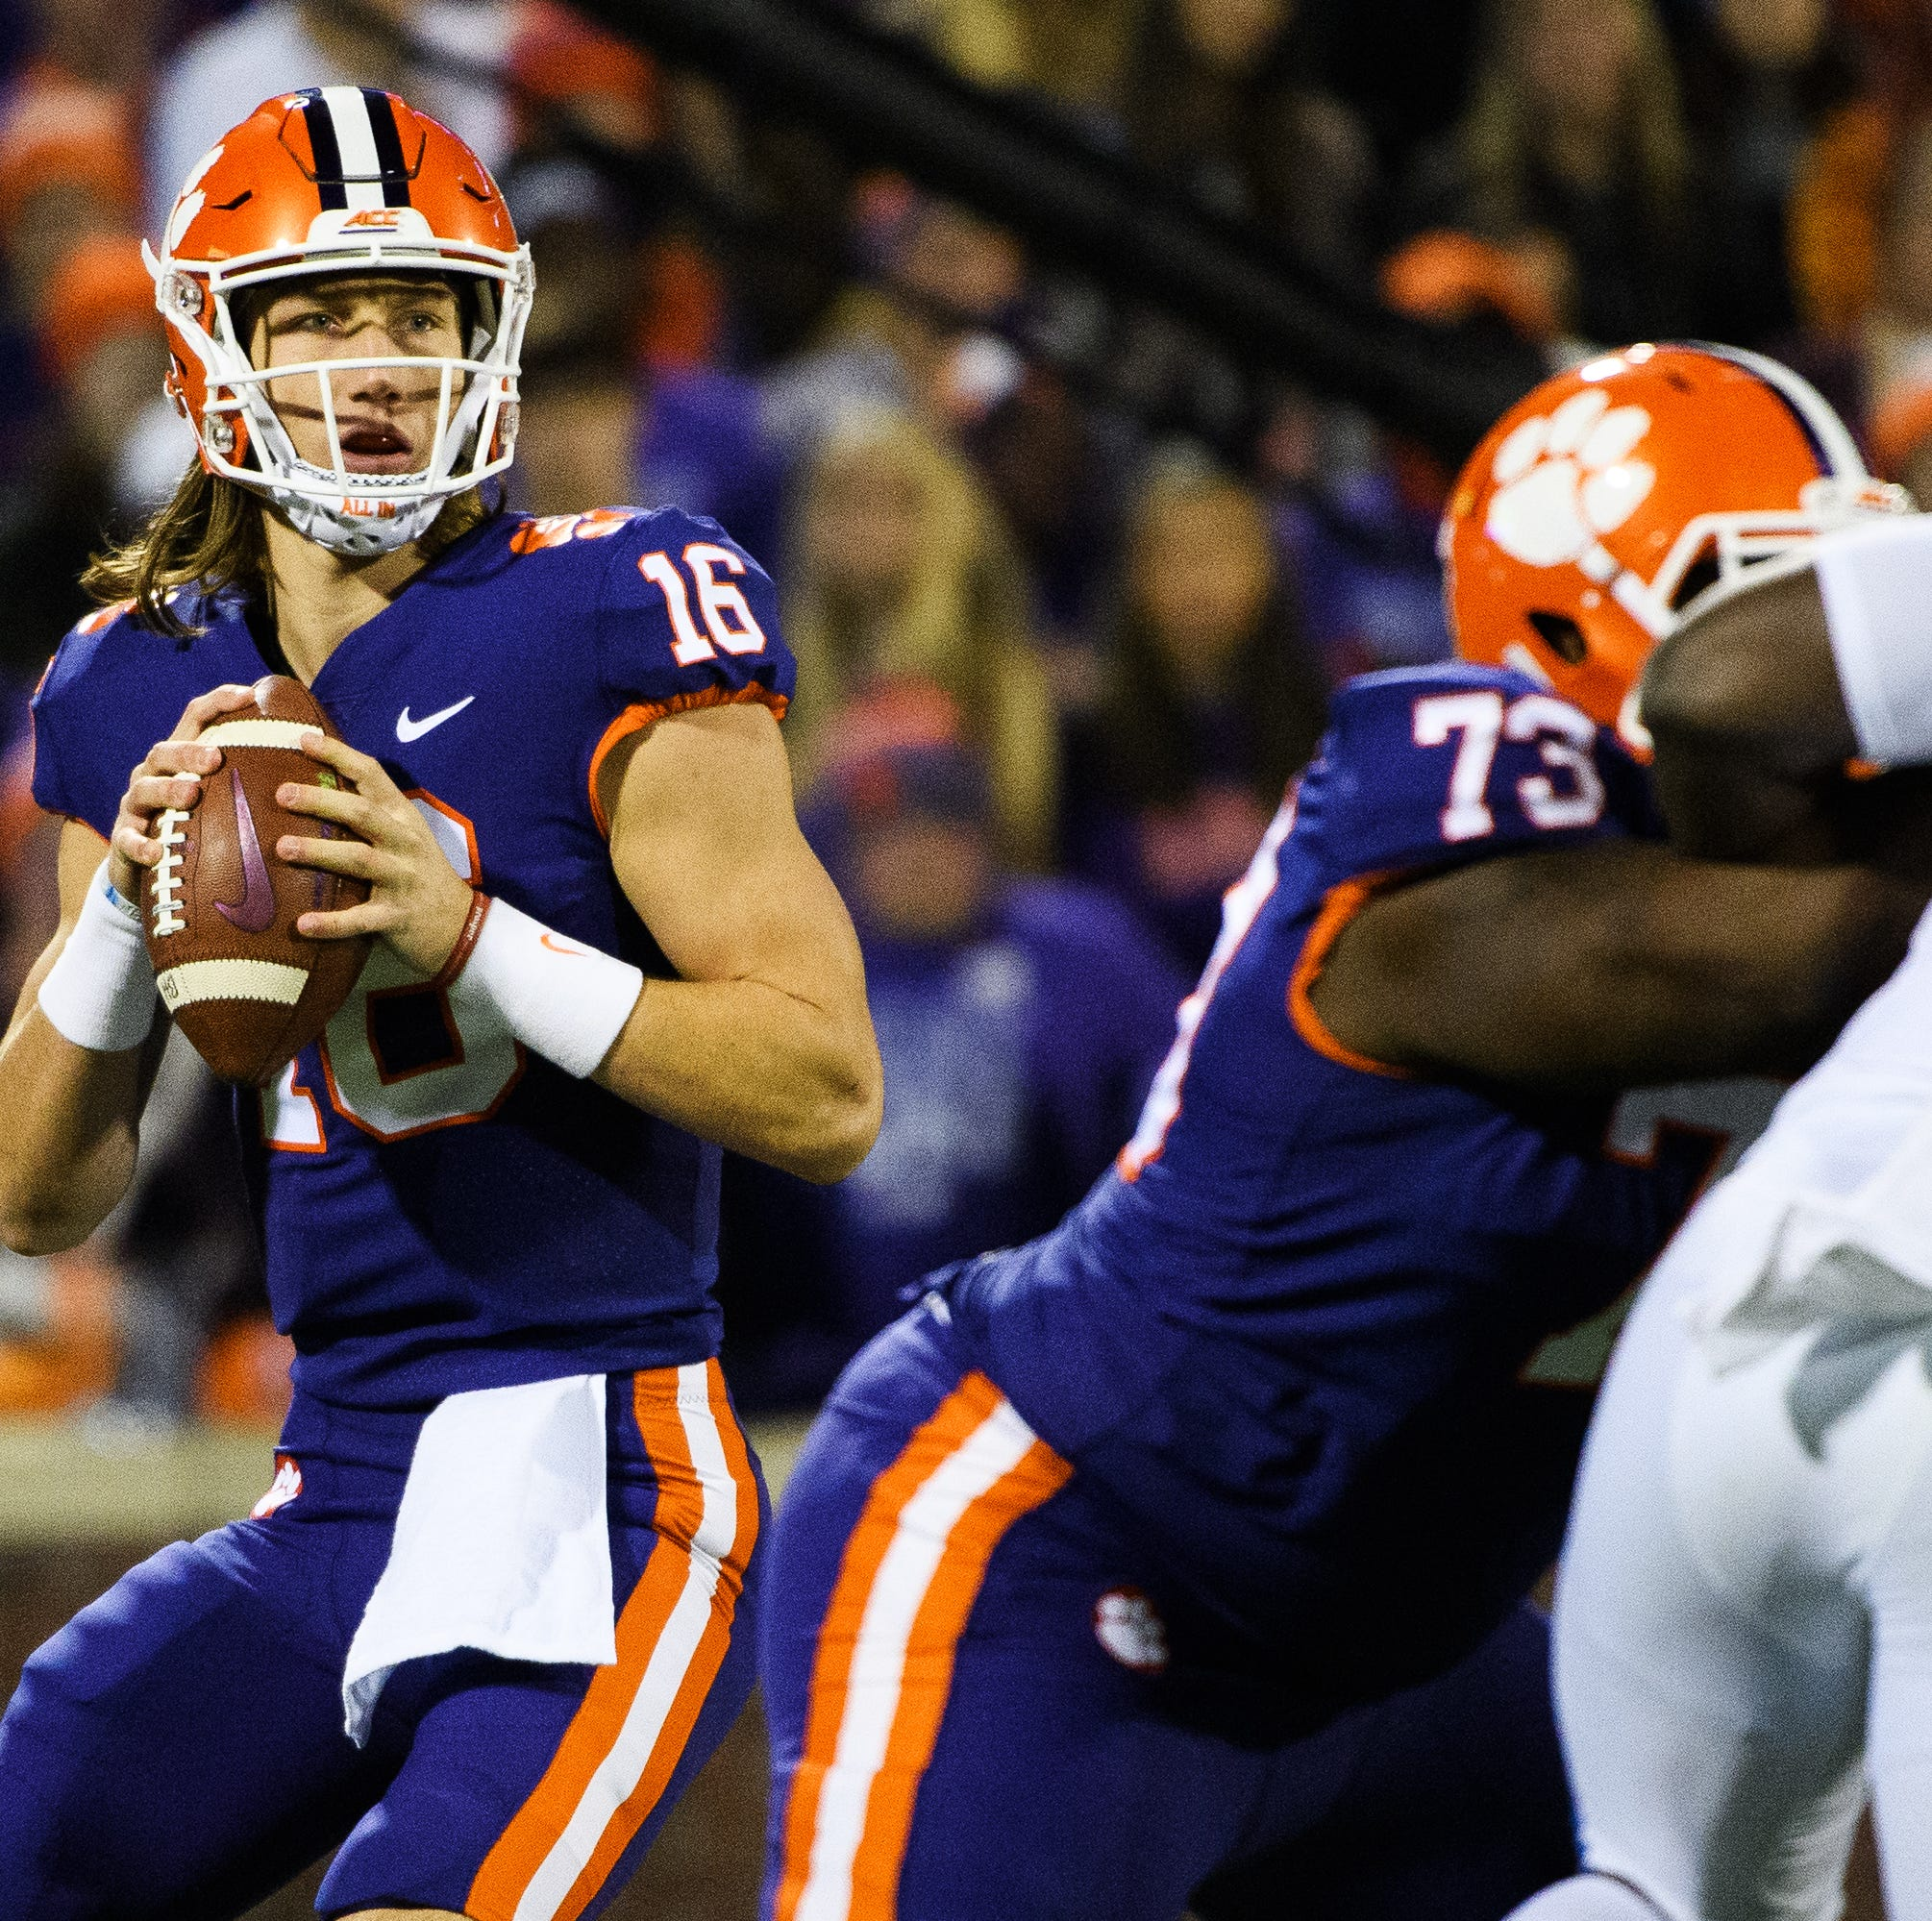 Live updates: Clemson increases its lead against Duke; Hunter Renfrow will not return